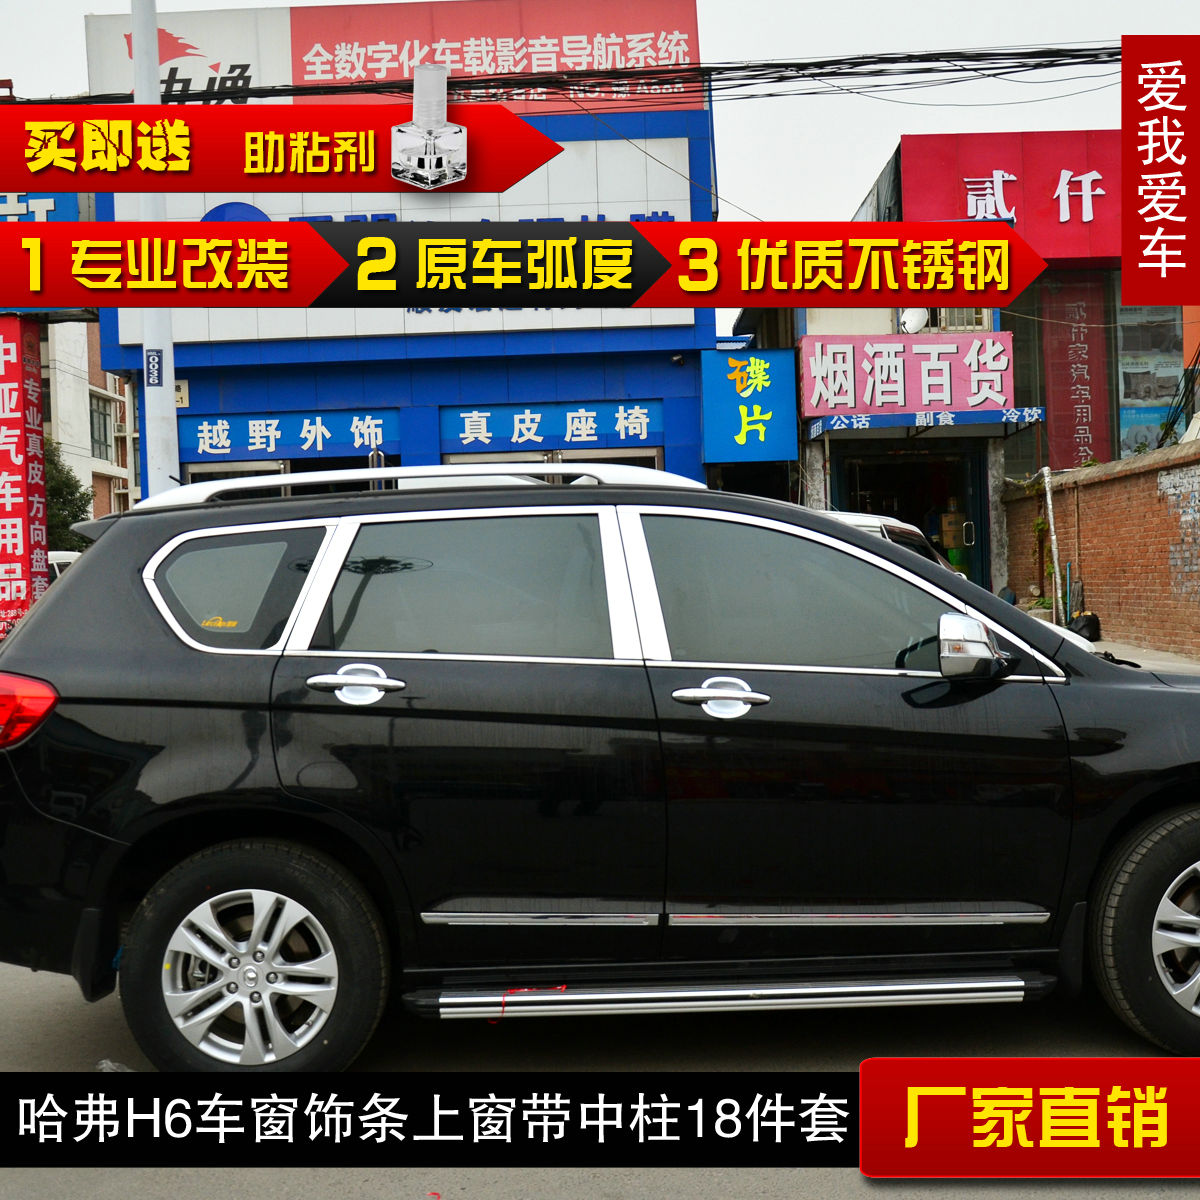 Haval great wall sports h6 window decoration c30 c50 m4 hemming article - CAR PARTS store